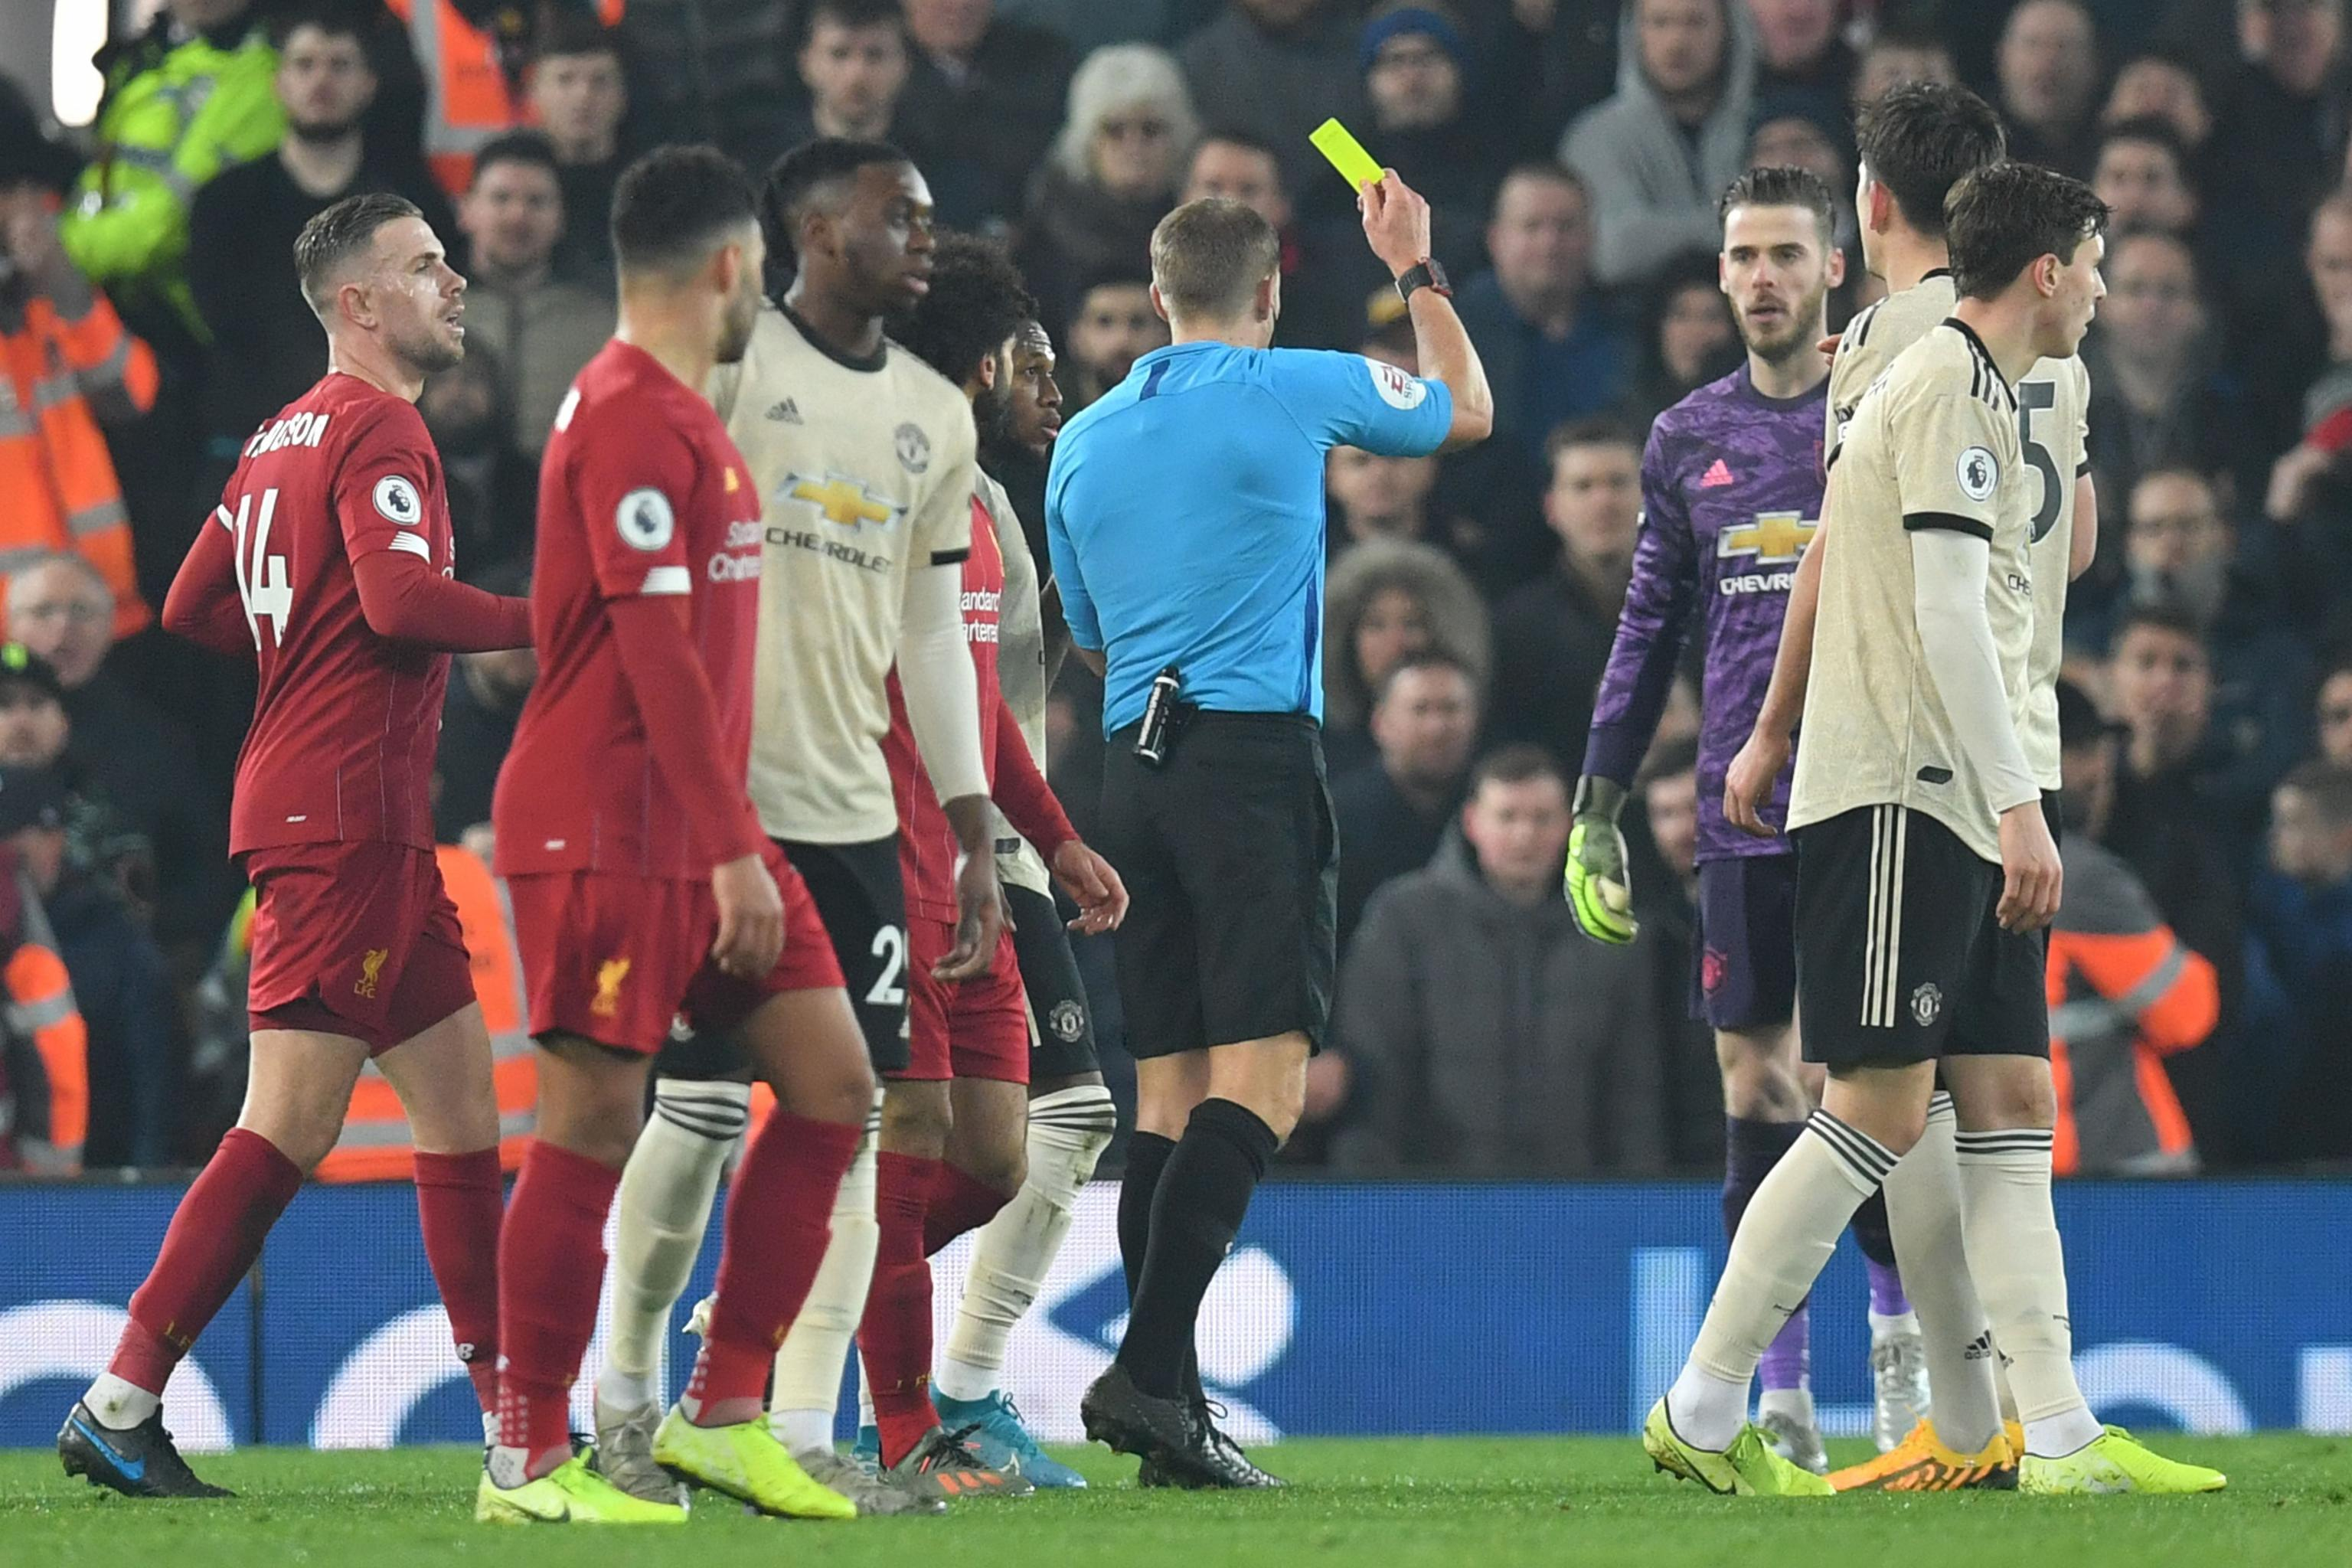 Man Utd fined after heated exchange with referee in Liverpool defeat